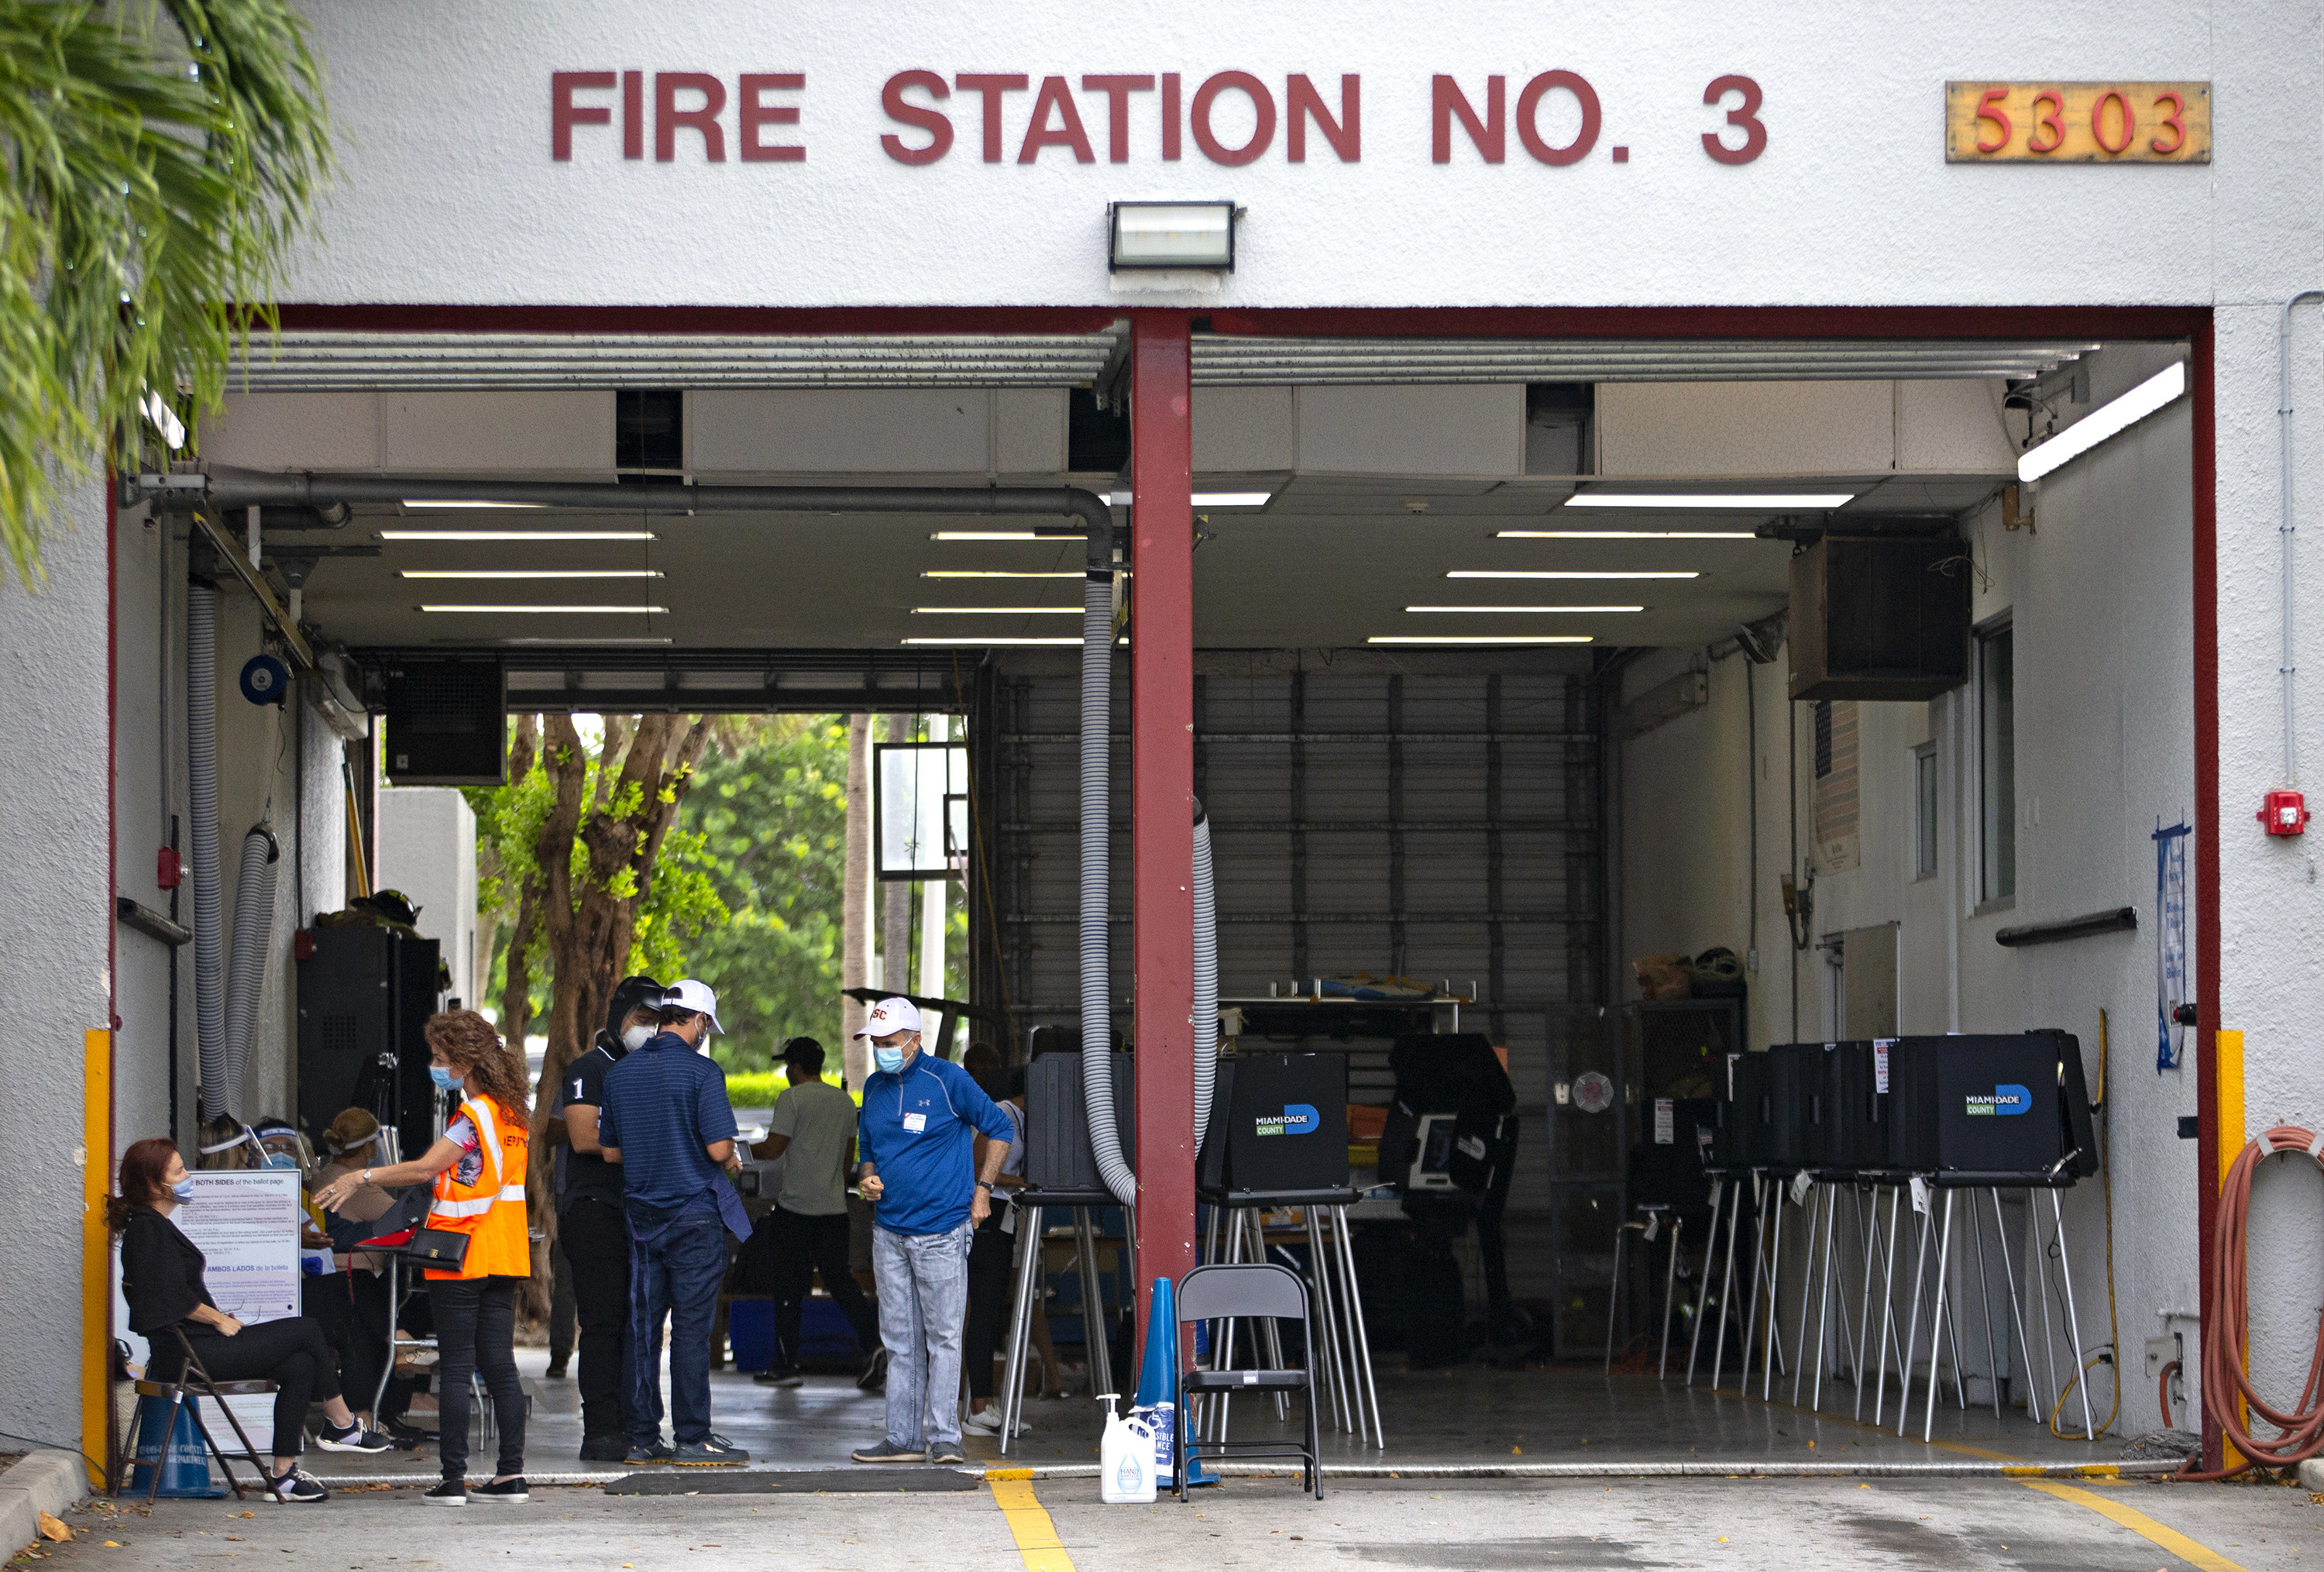 Voters and ballot boxes at a fire station.